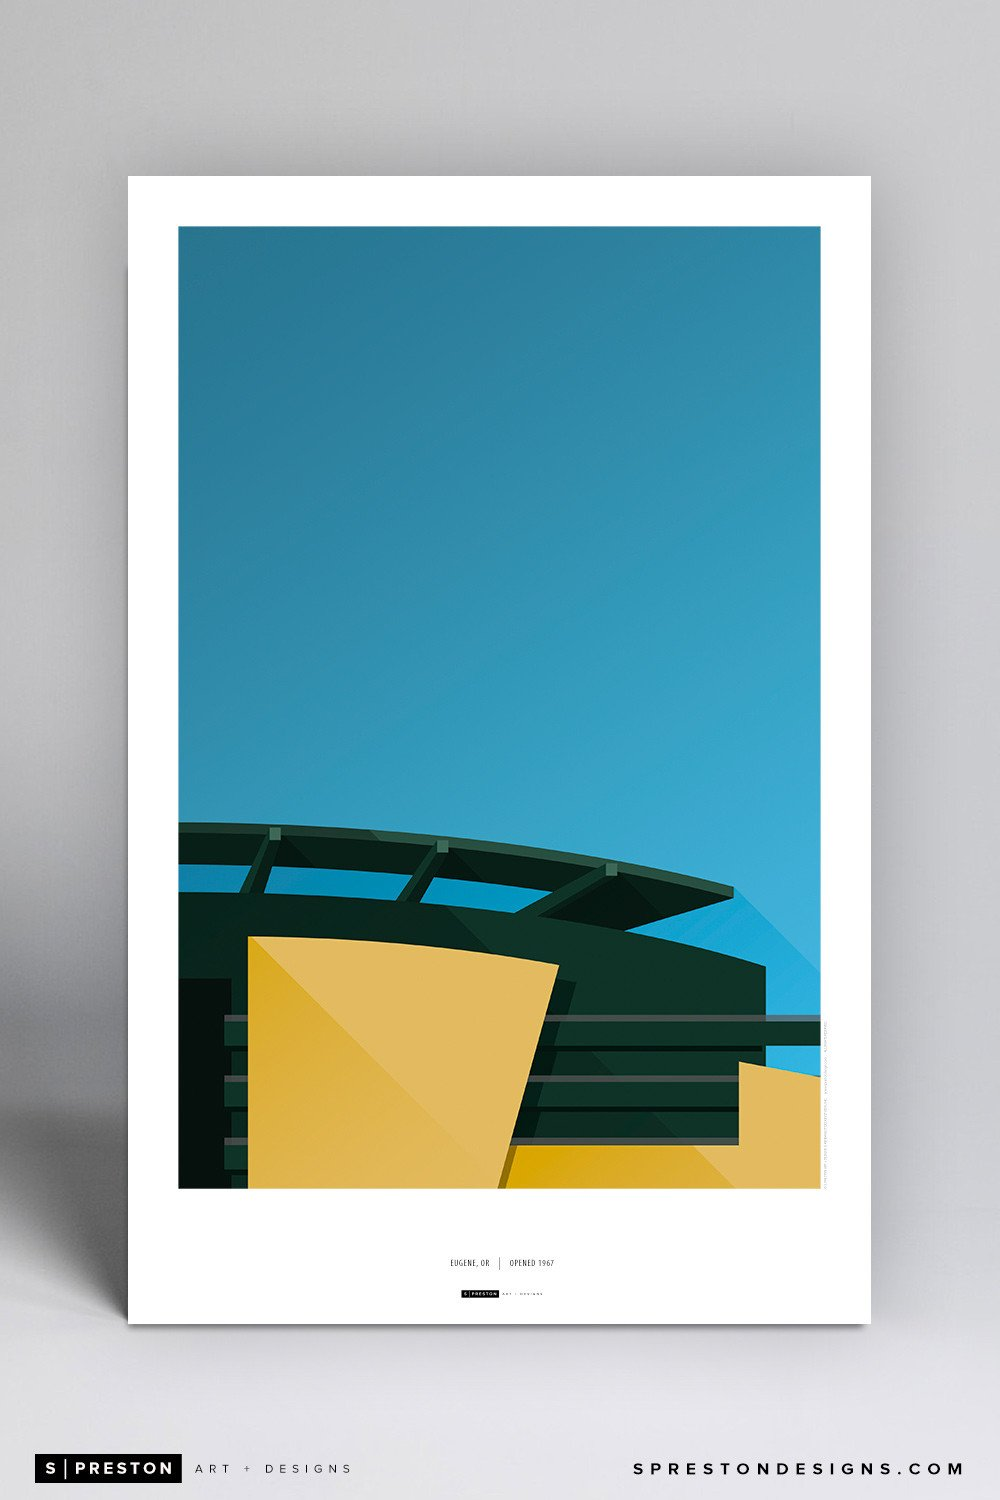 Minimalist Autzen Stadium Poster Print - University of Oregon - S. Preston Art + Designs